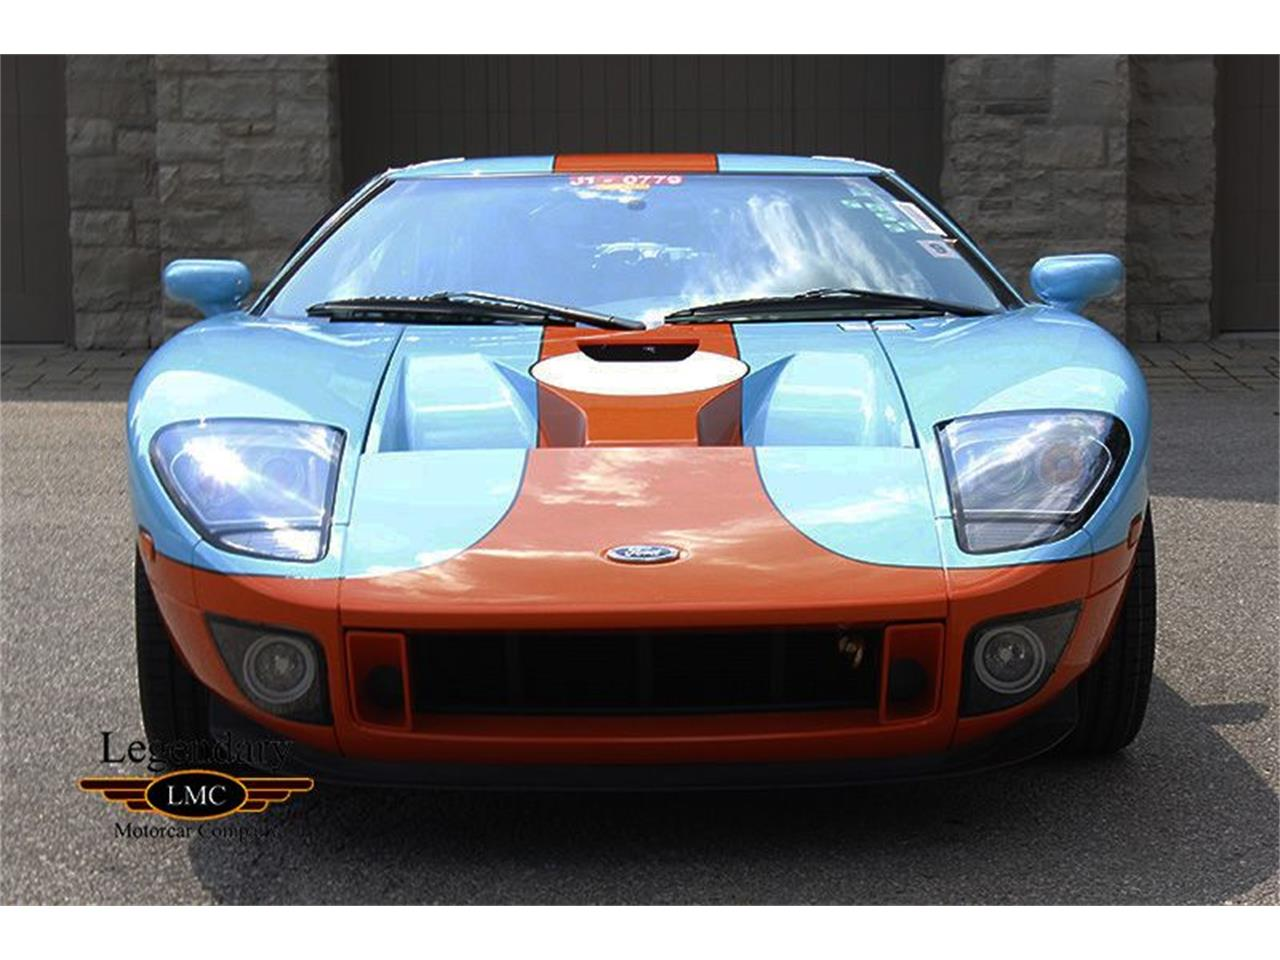 Large Picture of '06 GT located in Halton Hills Ontario Auction Vehicle Offered by Legendary Motorcar Company - LP03